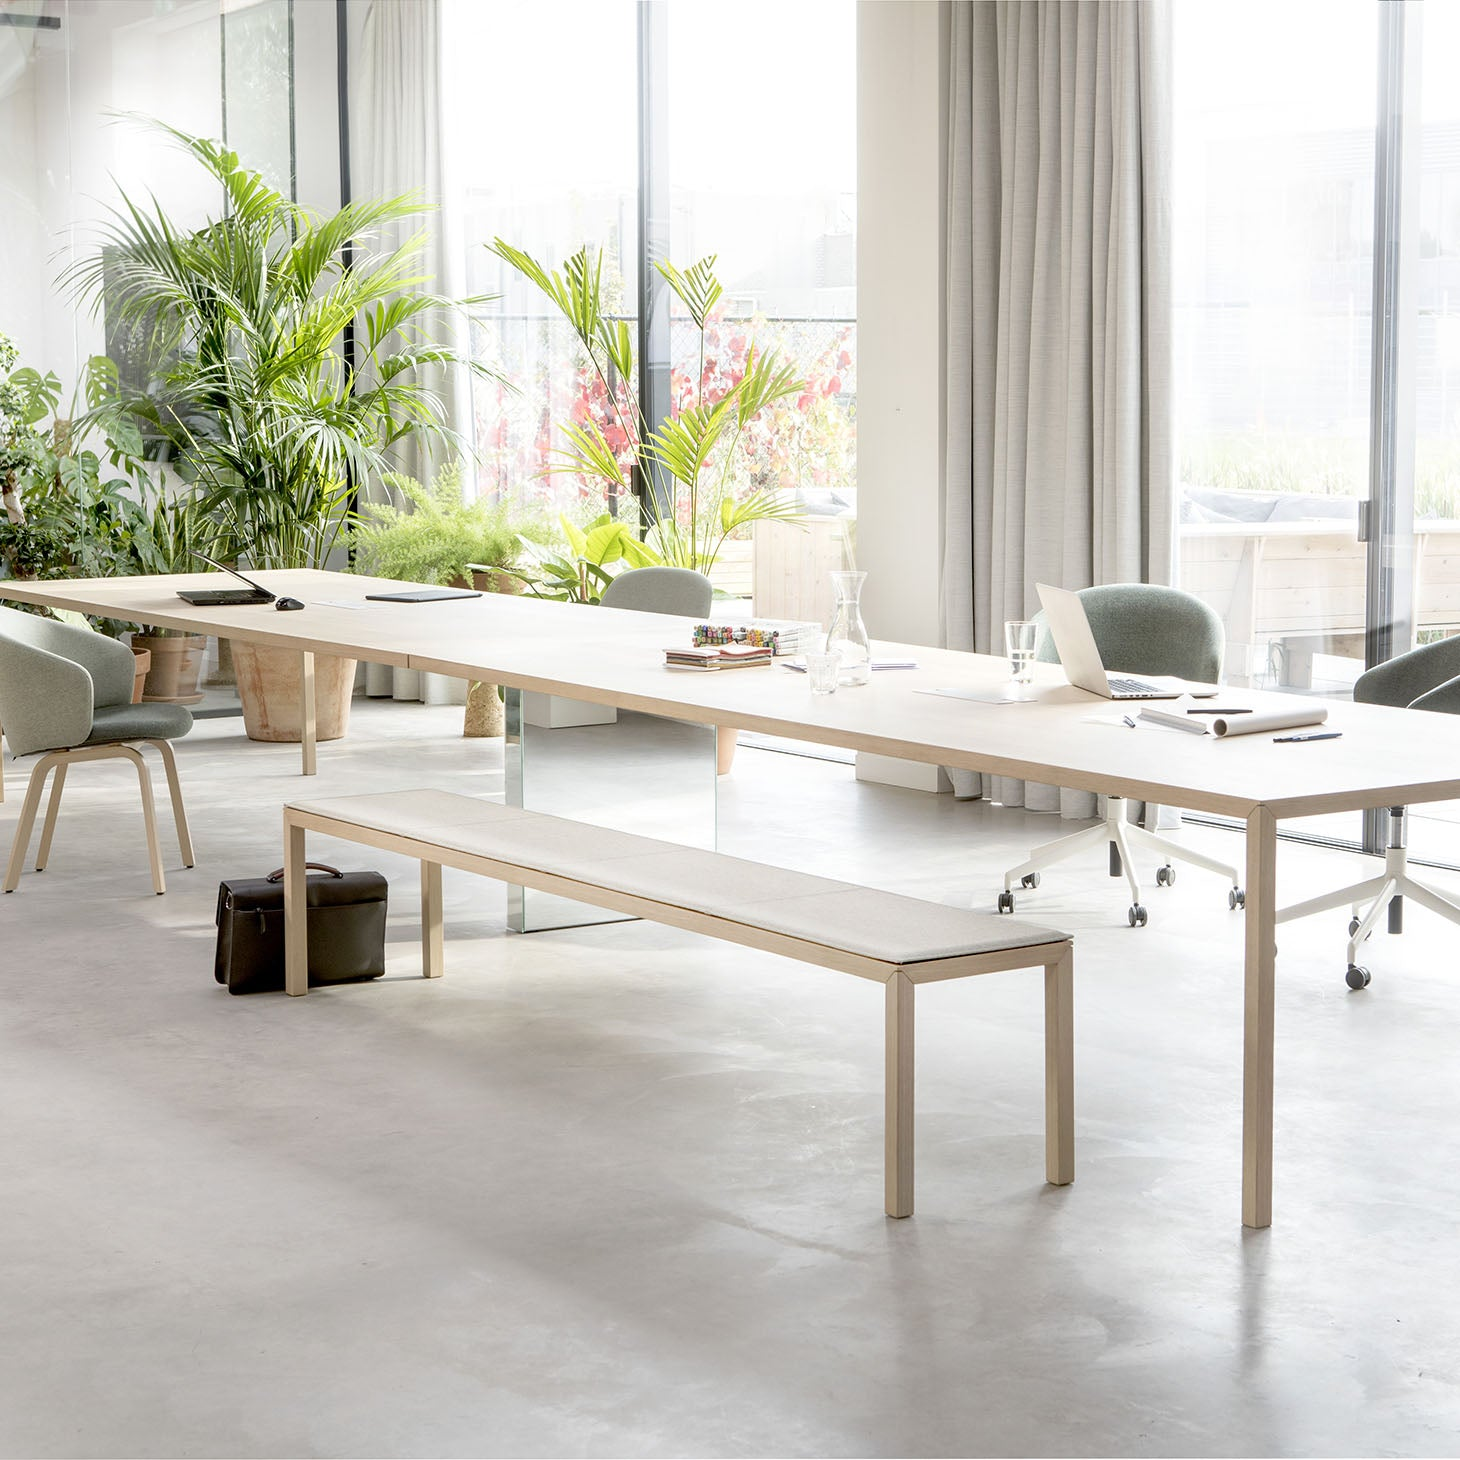 Slim+ Connected Table and Bench